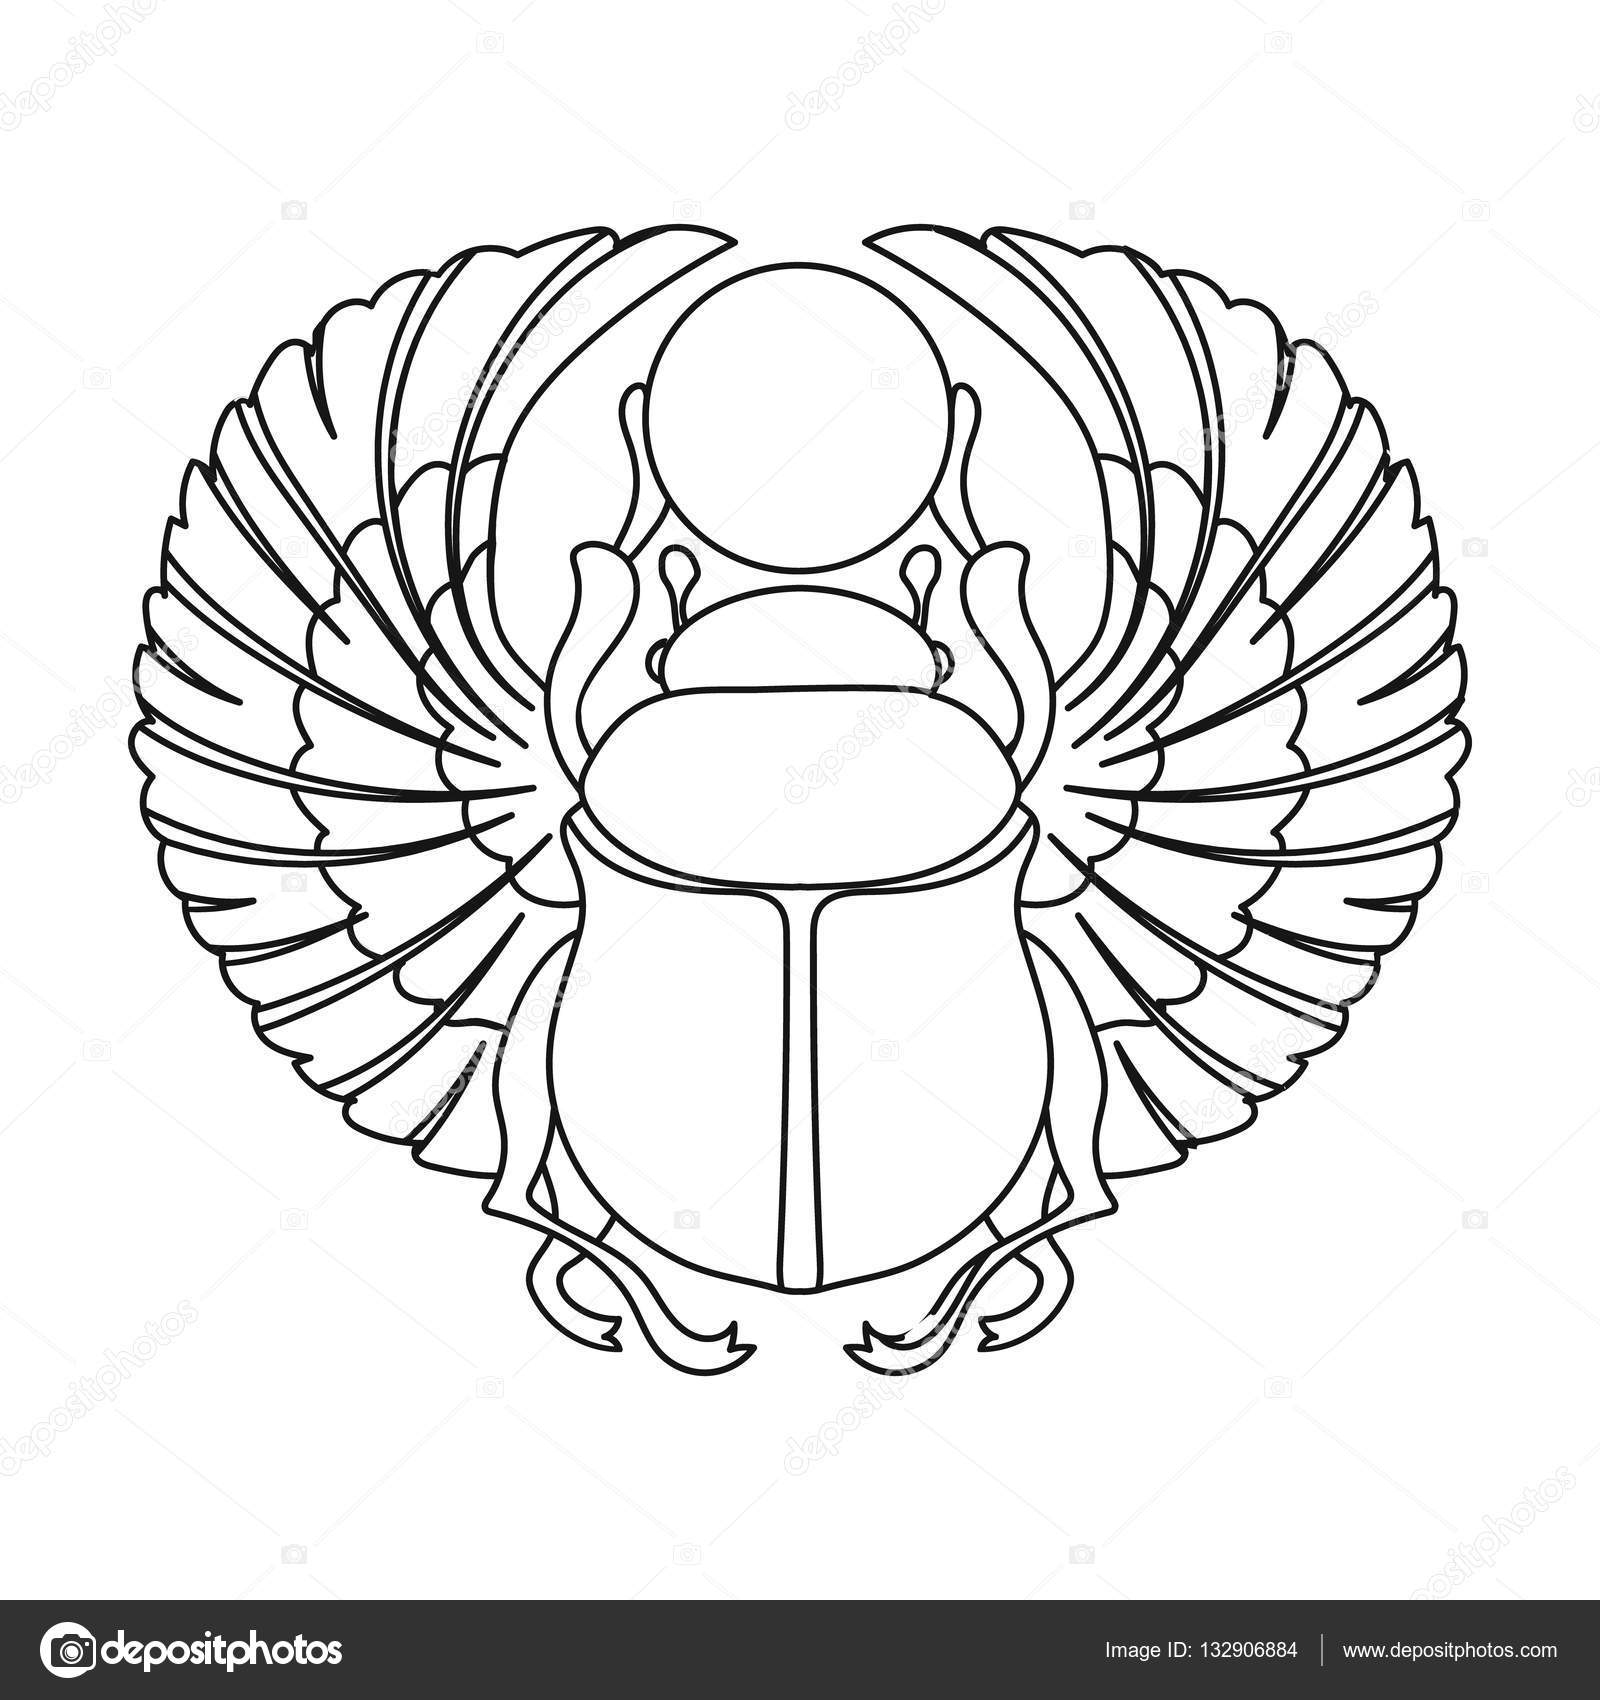 Scarab icon in outline style isolated on white background ...: http://depositphotos.com/132906884/stock-illustration-scarab-icon-in-outline-style.html